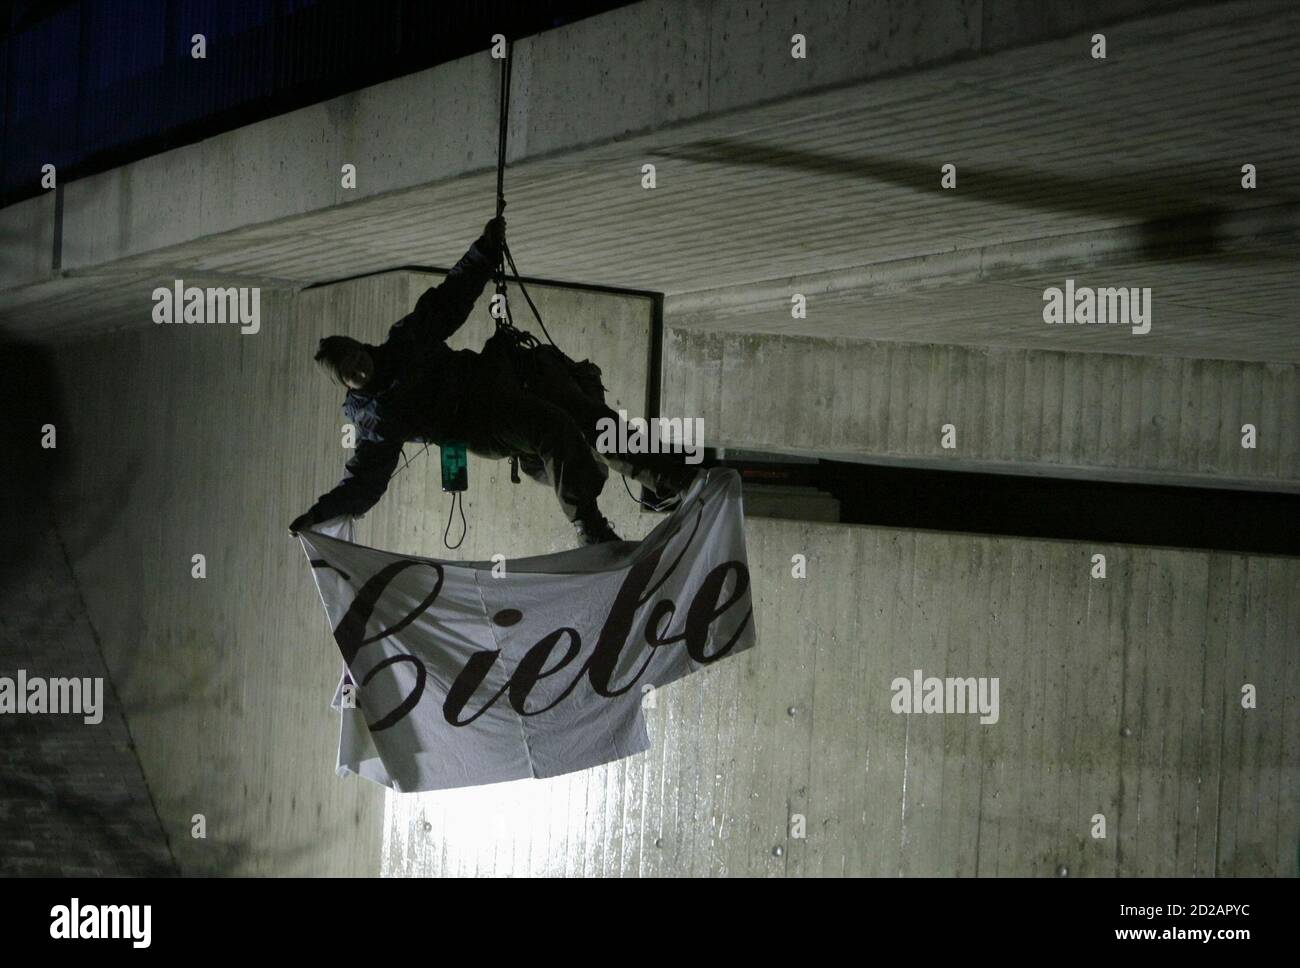 """An anti-nuclear activist from the German environmental organisation Robin Wood holds a banner reading """"Love"""", while hanging from a rope over a railway track in Oldendorf, between Lueneburg and Dannenberg November November 10, 2008. The controversial shipment of eleven Castor containers with spent German nuclear fuel arrived in Dannenberg on Monday and will be loaded onto trucks before transportation to the nearby Gorleben intermediate storage facility in northern Germany after it left the French reprocessing plant of La Hague on Friday.  REUTERS/Christian Charisius (GERMANY) Stock Photo"""